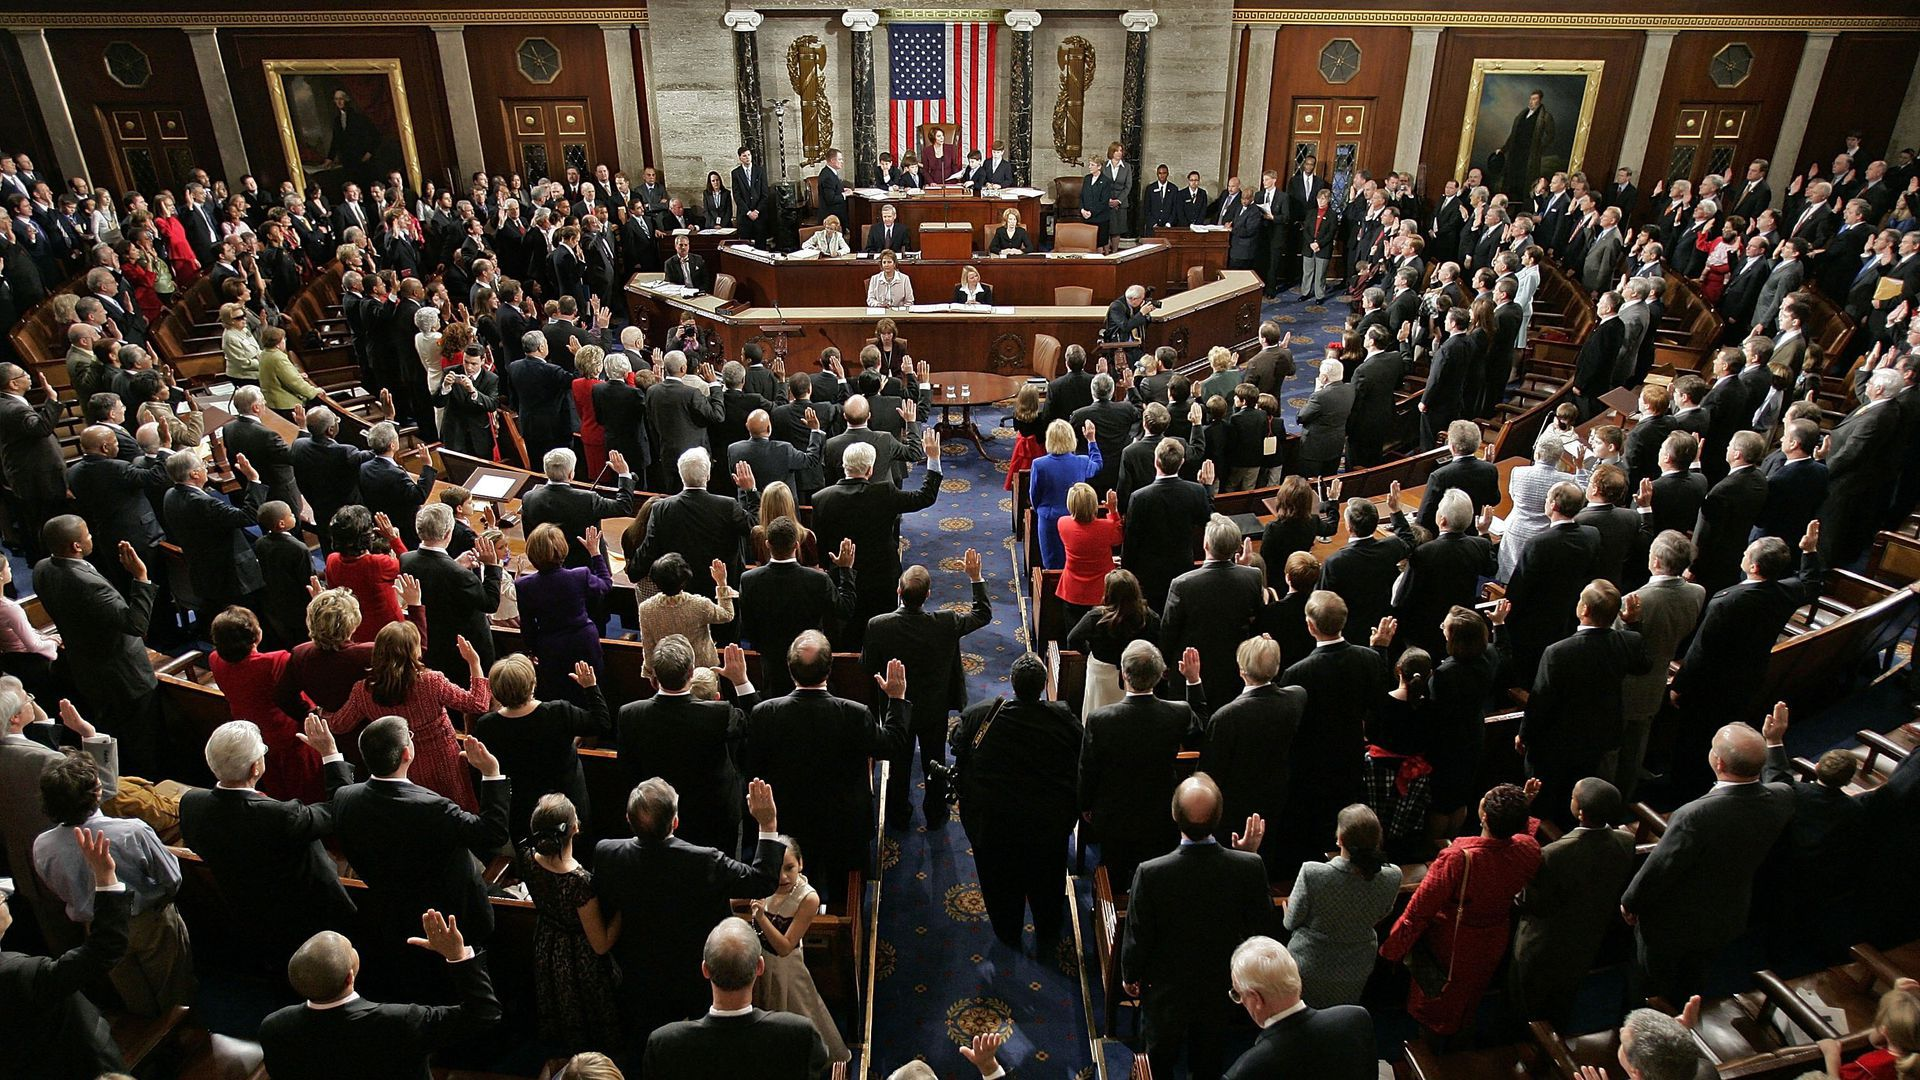 Members of Congress in the House Chamber